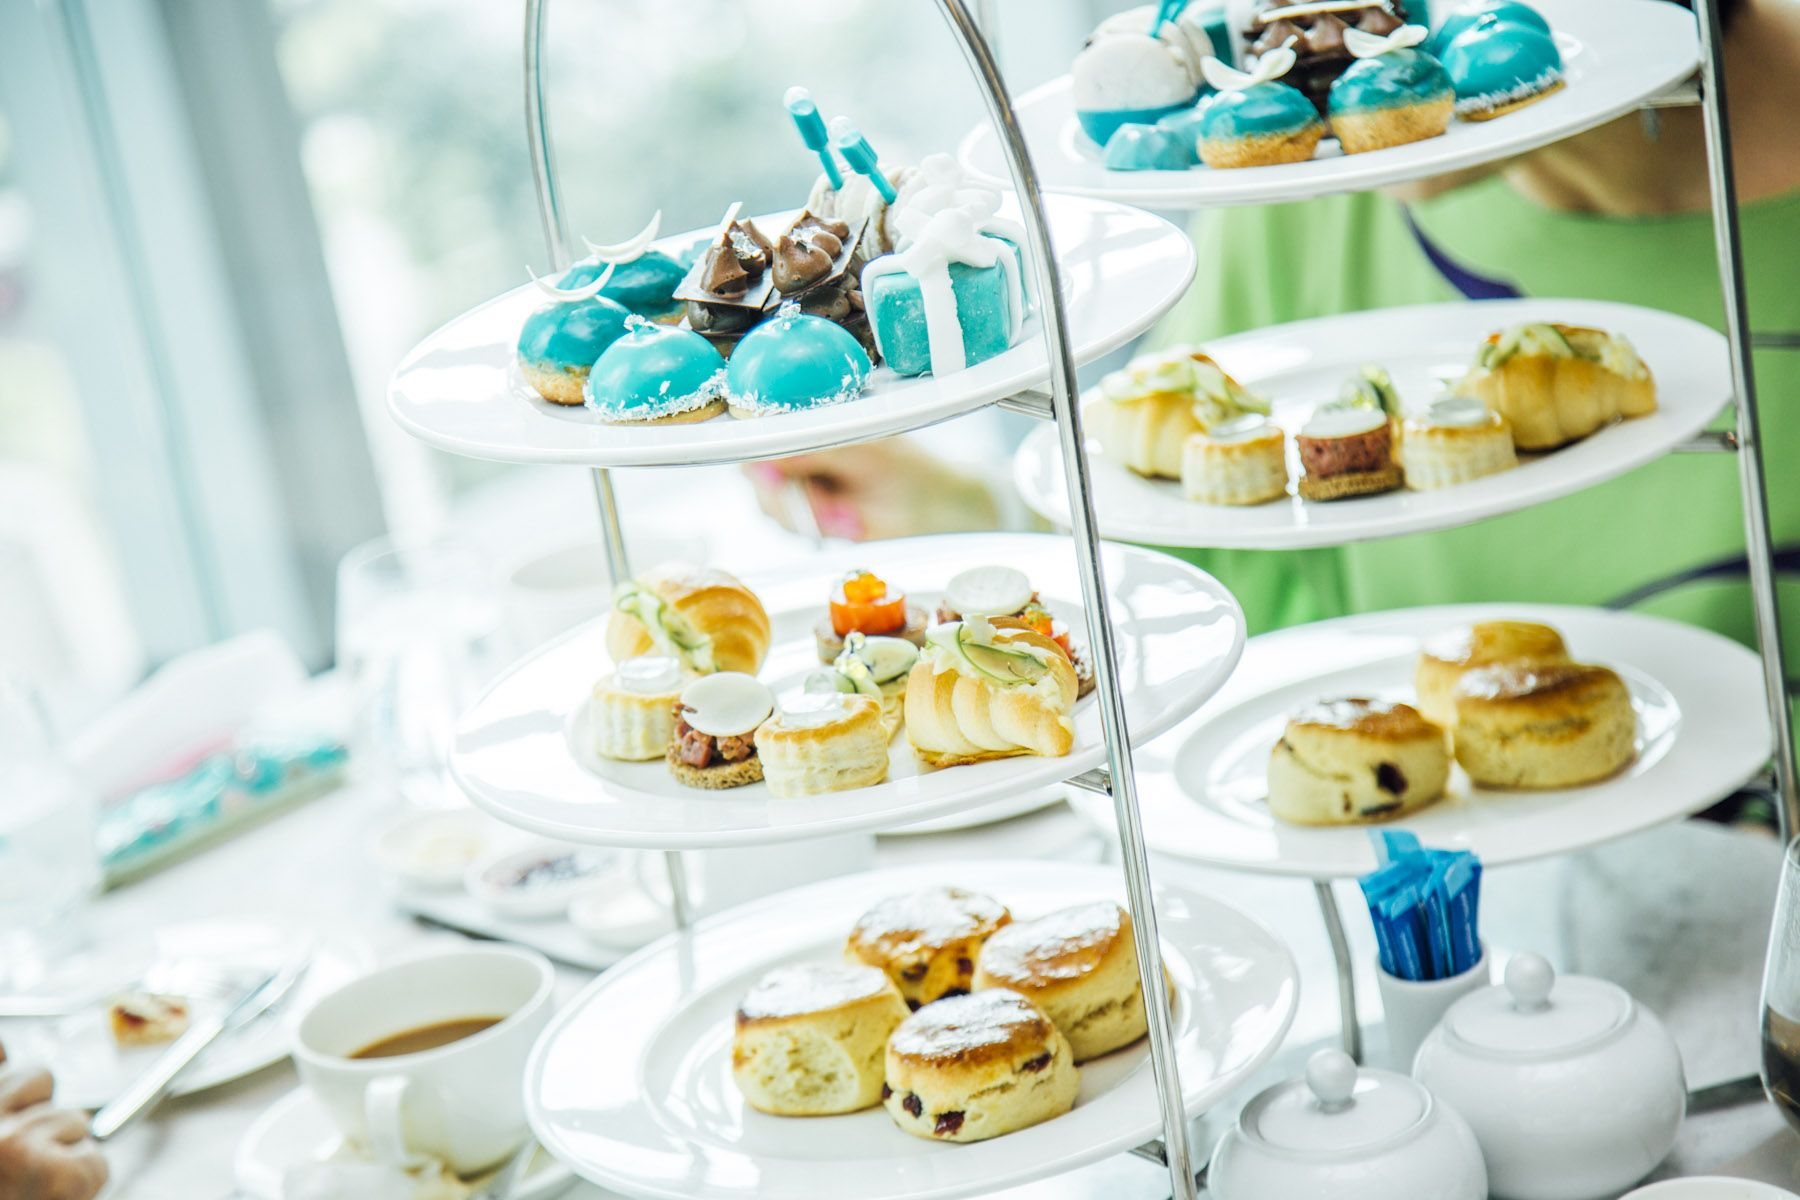 A Tiffany & Co. themed afternoon tea at the Four Seasons Hotel Kuala Lumpur